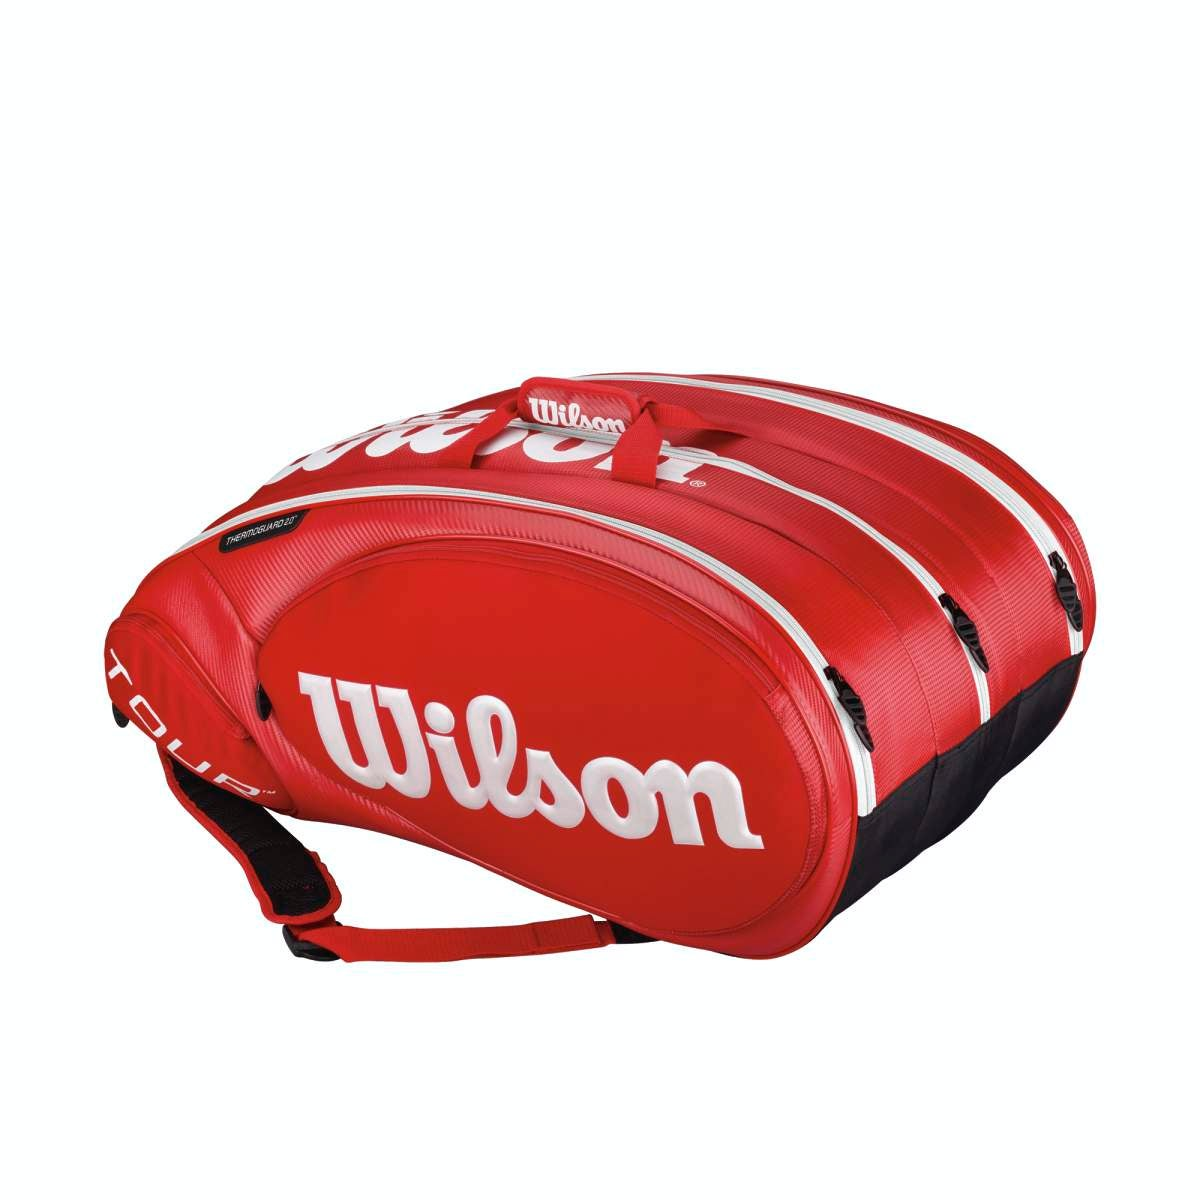 TOUR BAG - RED, 15 PACK